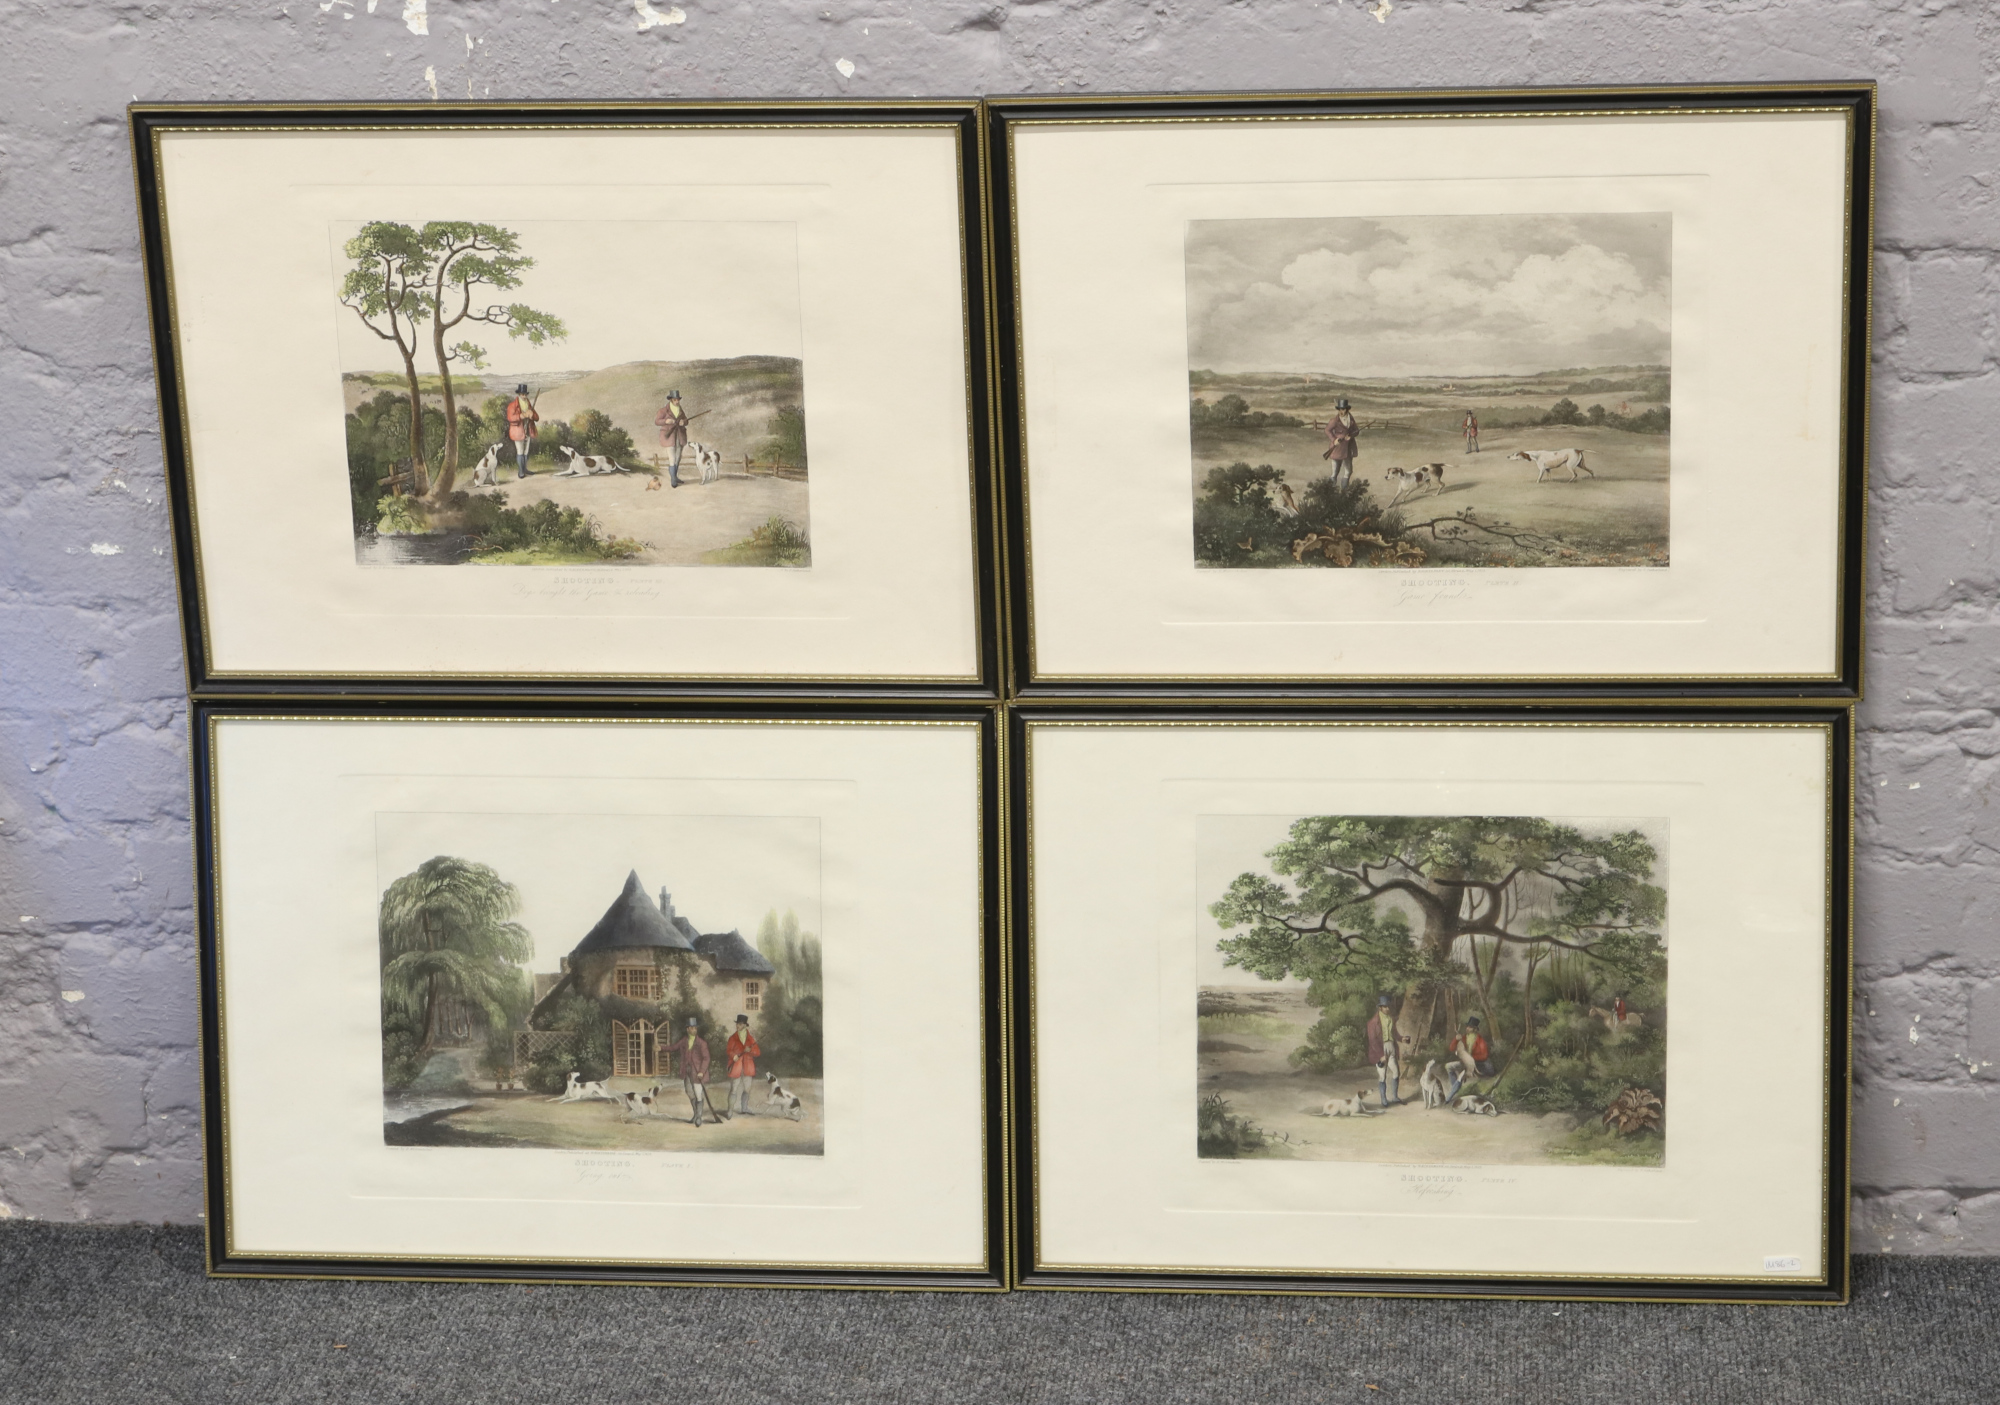 Lot 76 - A set of four antique hunting prints after Wolstenholme and engraved by T. Sutherland.